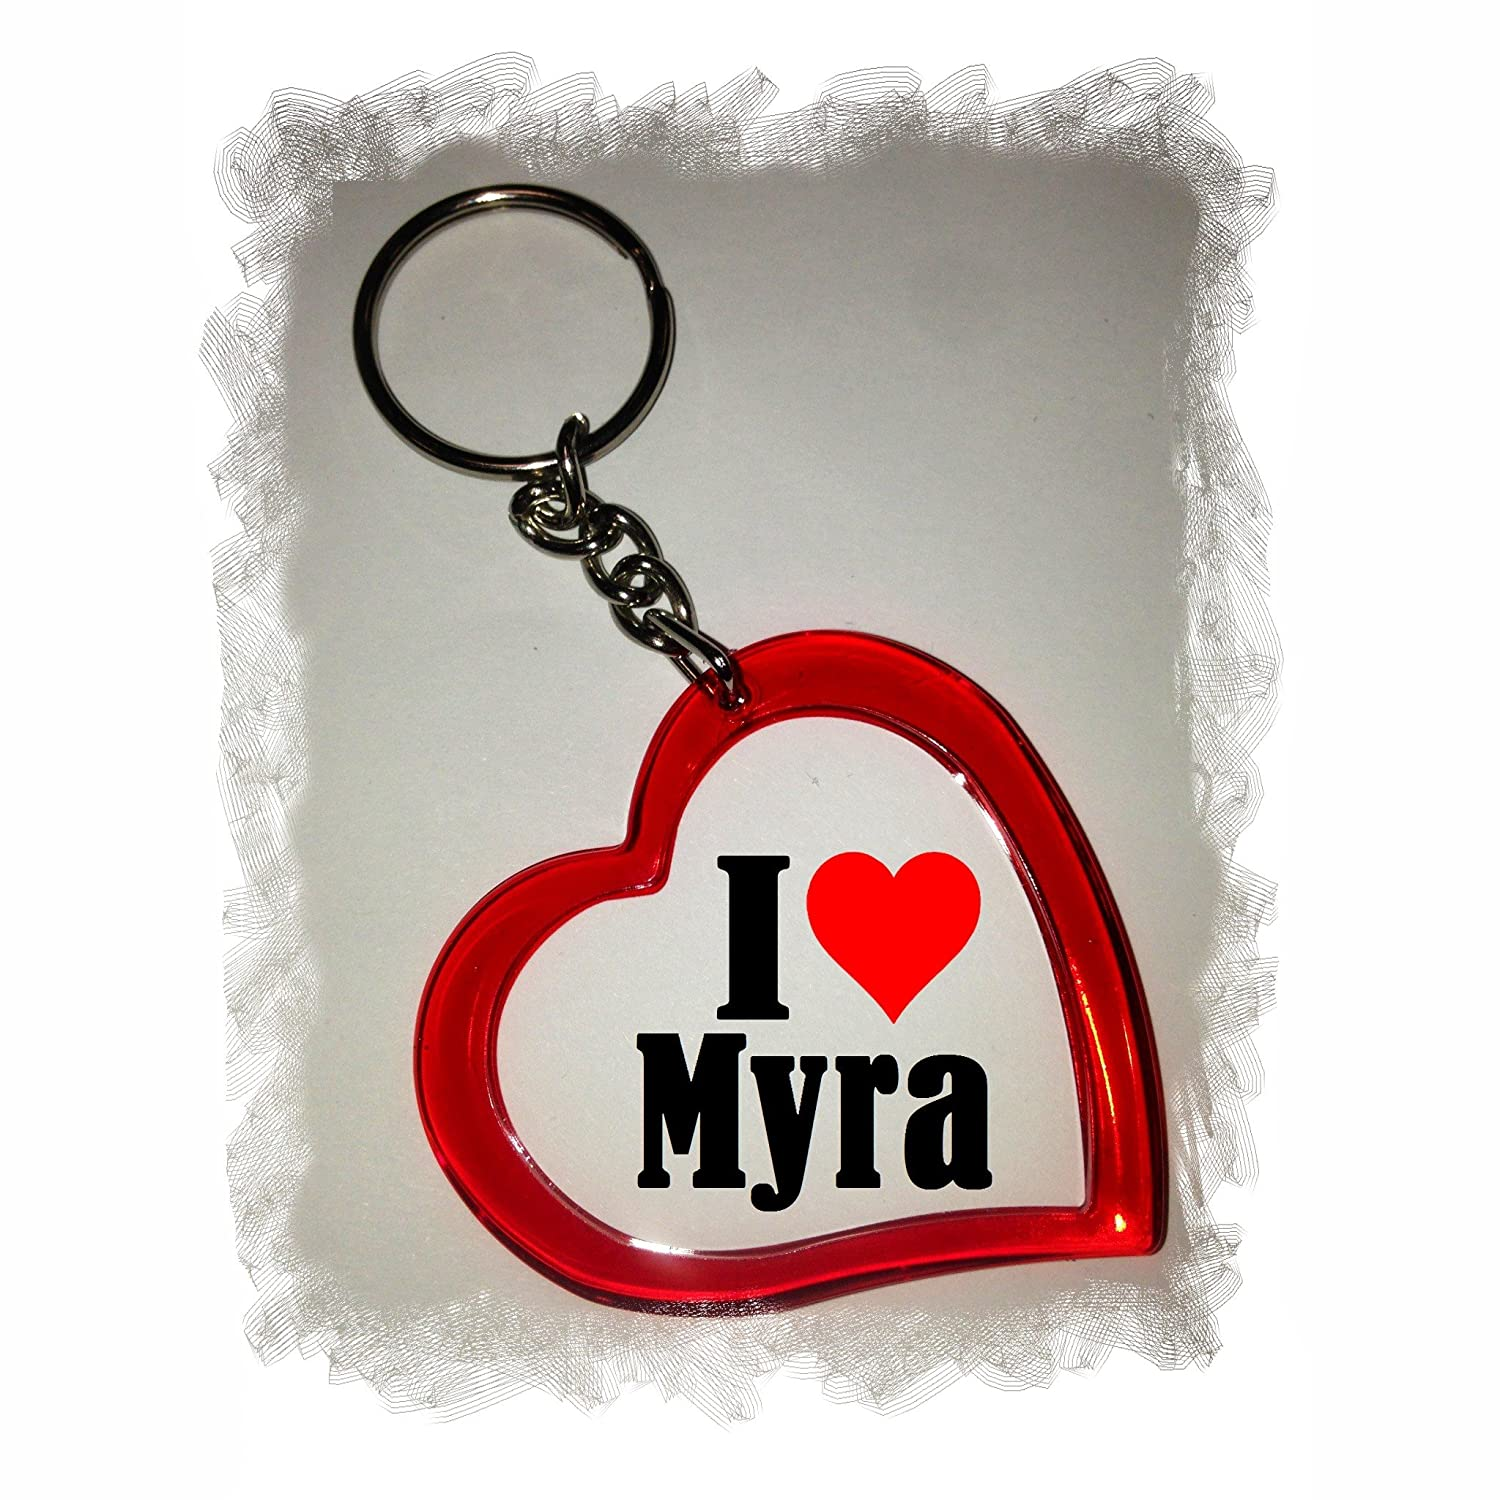 Exclusive Gift Idea: Heart Keyring I Love Myra, a Great gift that comes from the Heart - Backpack pendant - love pendant - Keychains- Keyring- Christmas Gift Druckerlebnis24